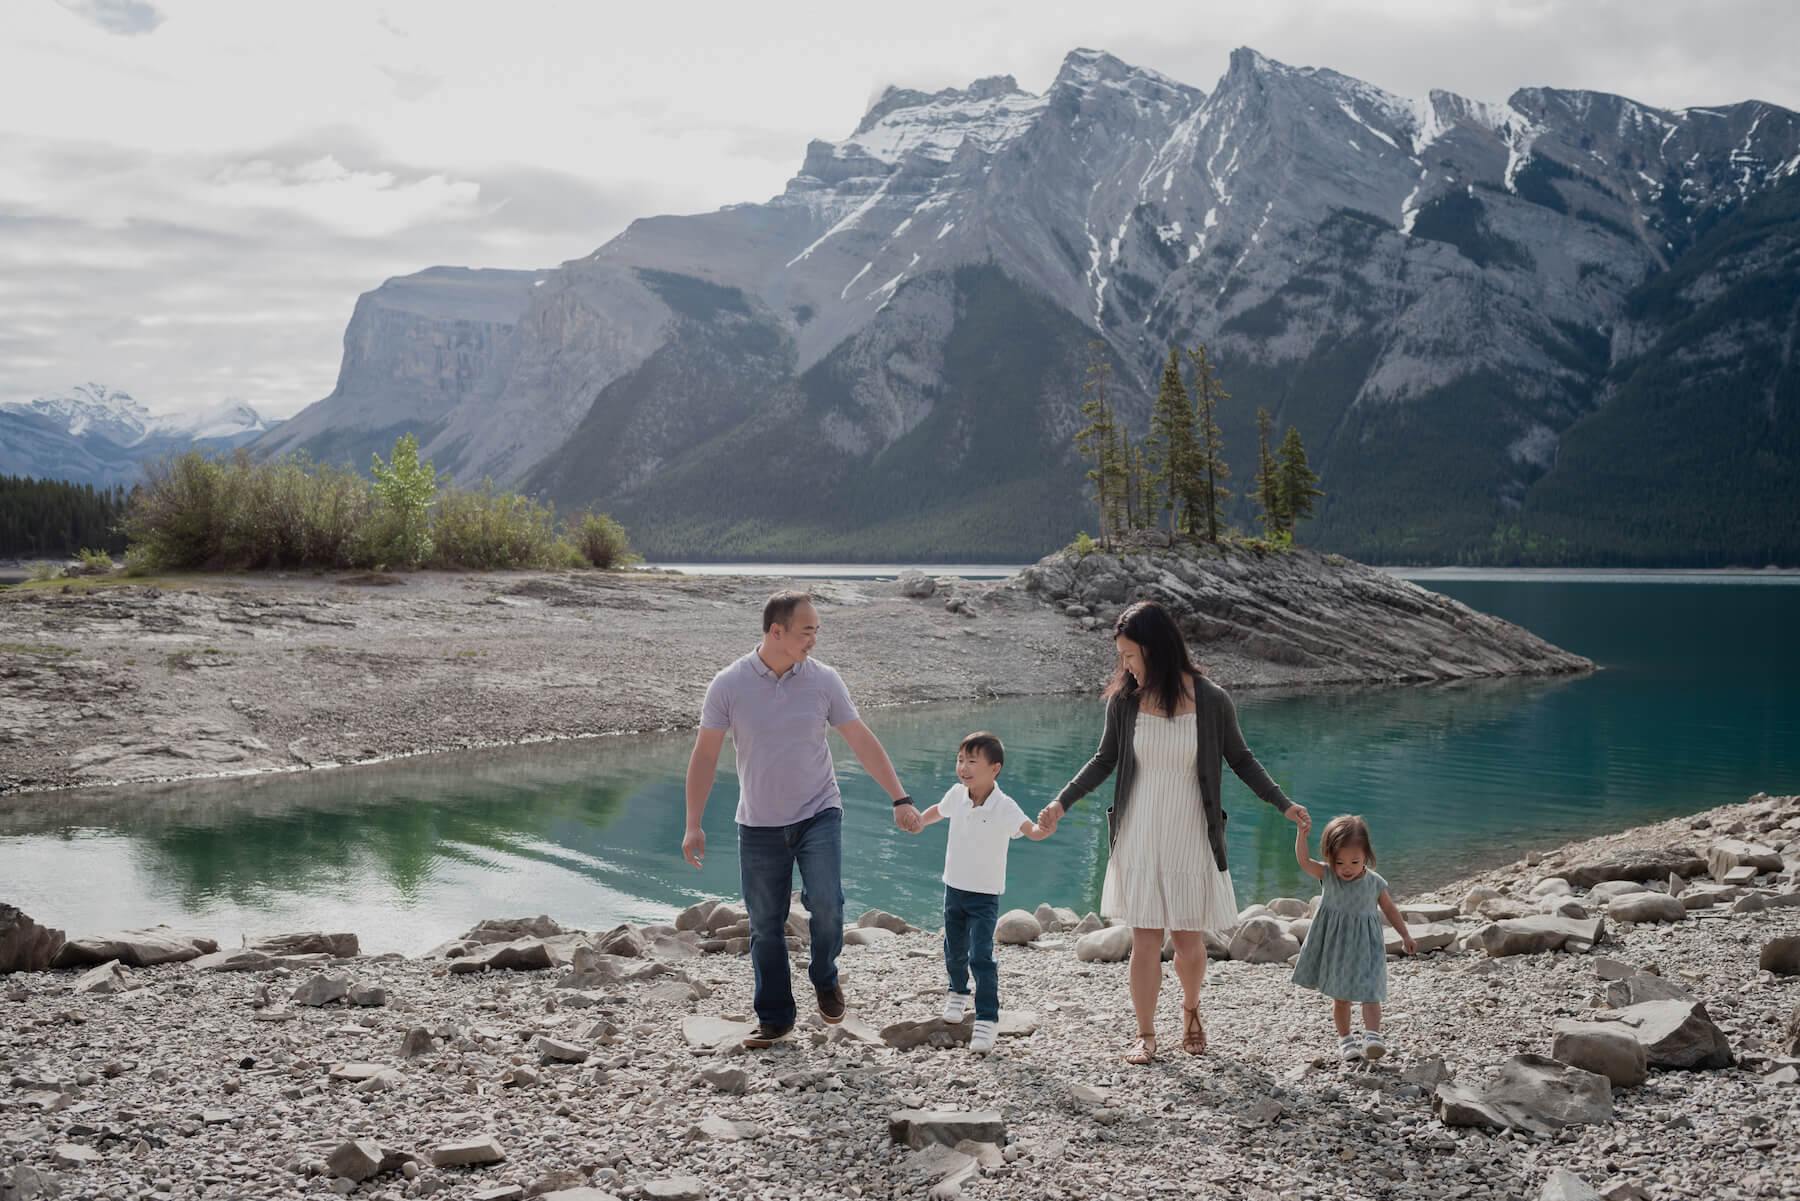 Family of 4 in Banff, Alberta